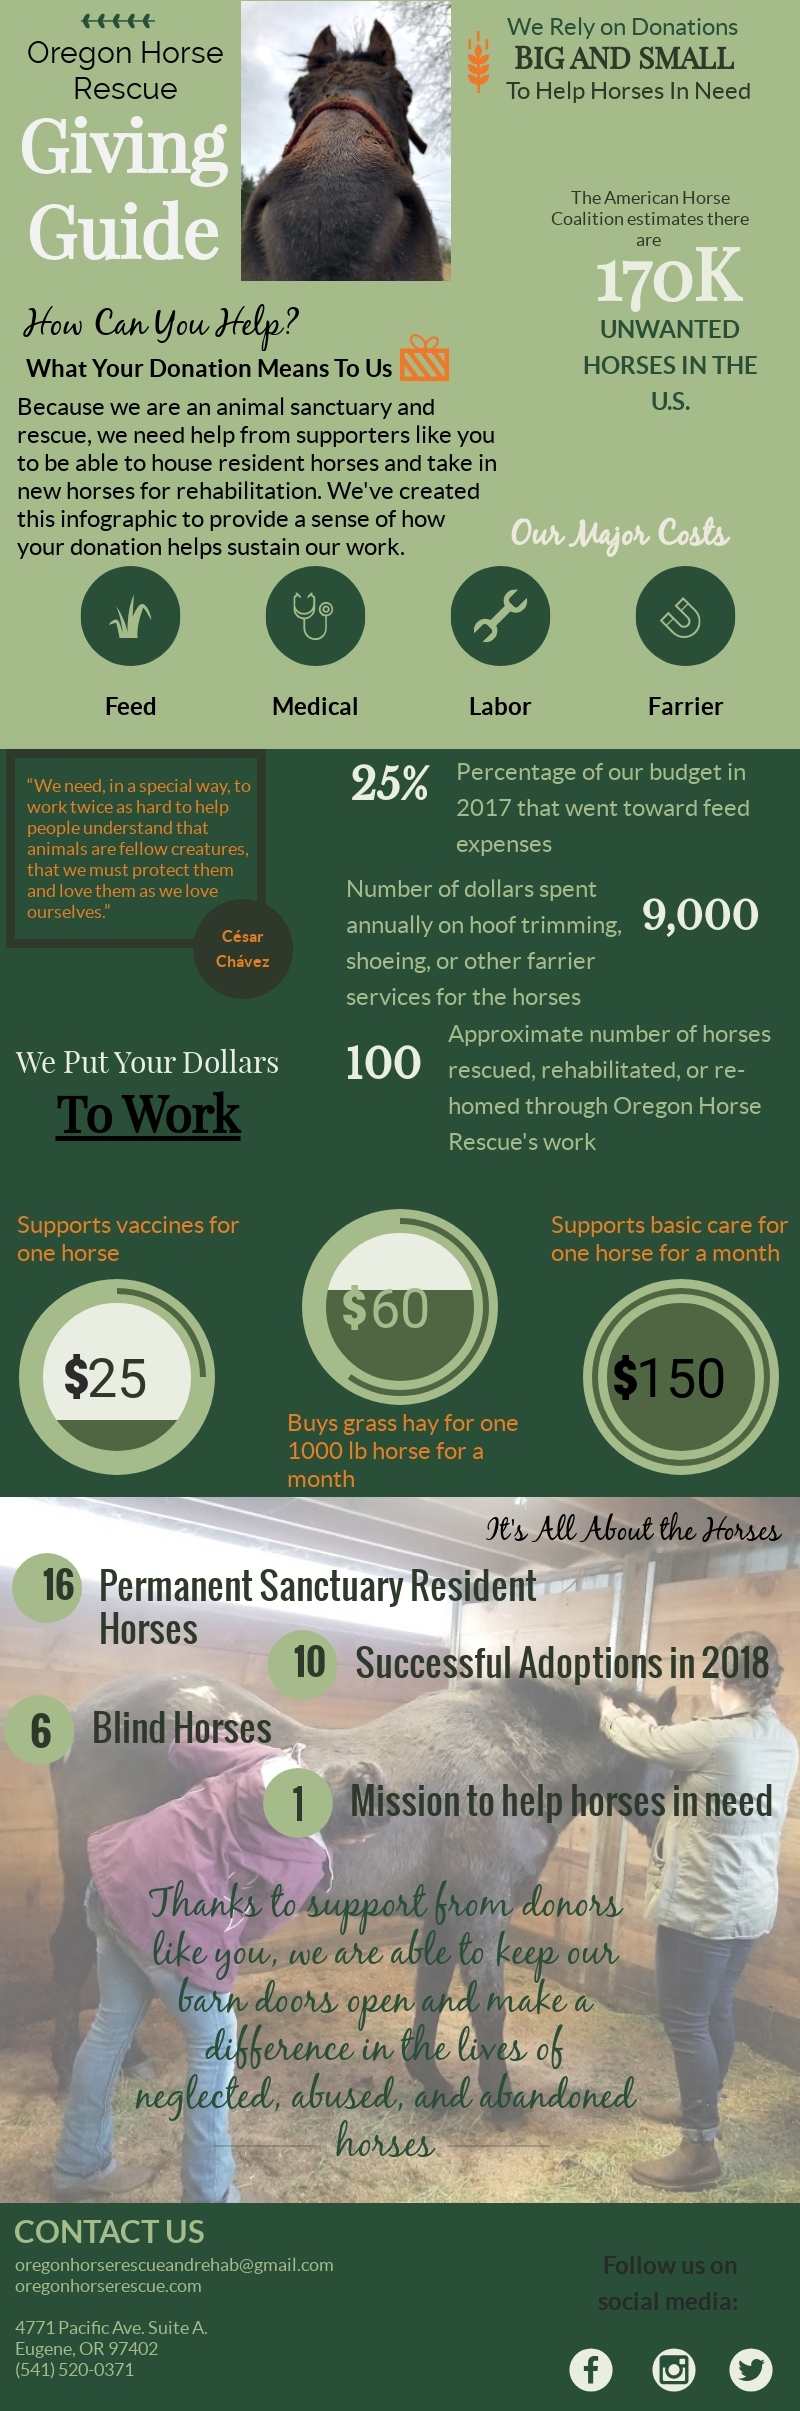 OHR-Giving-Guide-Infographic (5).jpg